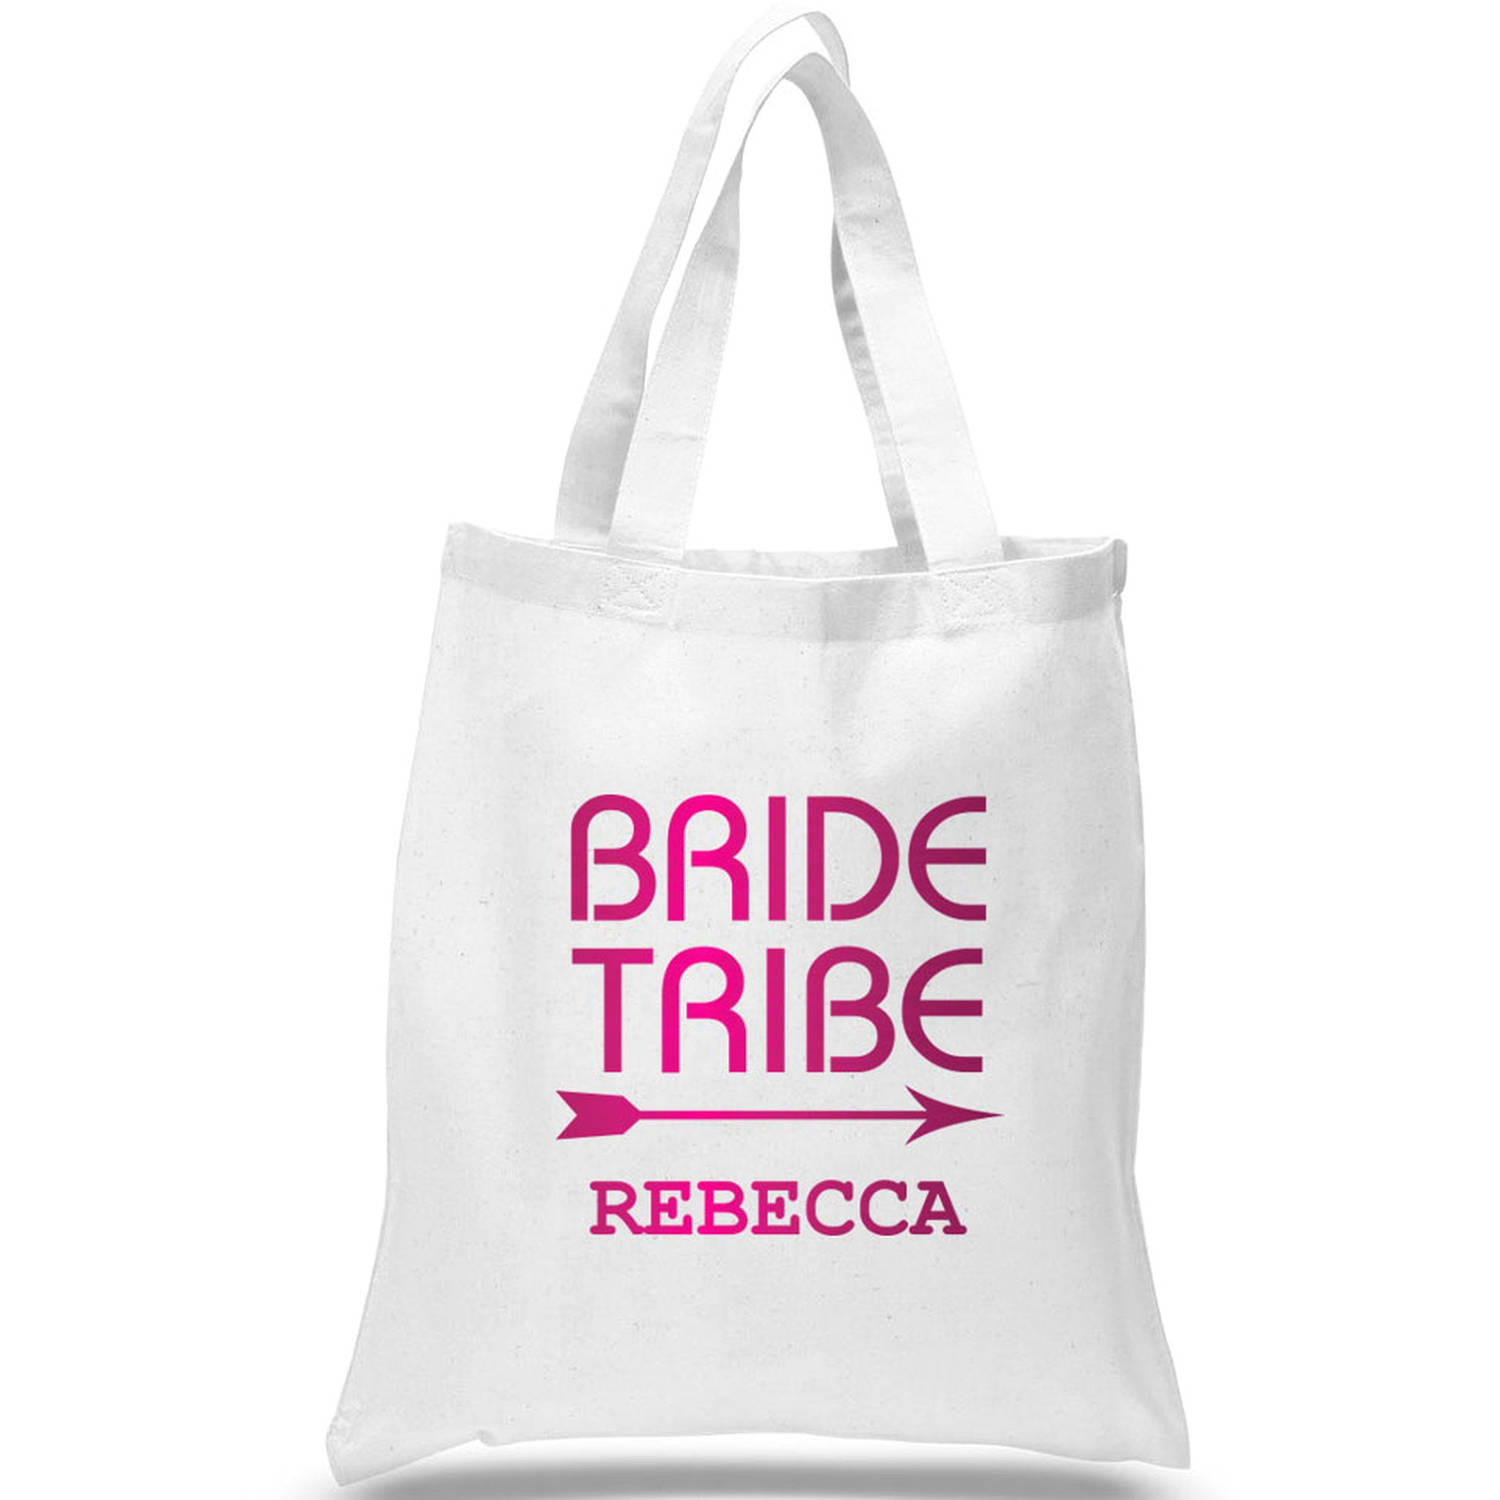 """Customized Bride Tribe Cotton Tote Bag, Sizes 11"""" x 14"""" and 14.5"""" x 18"""""""